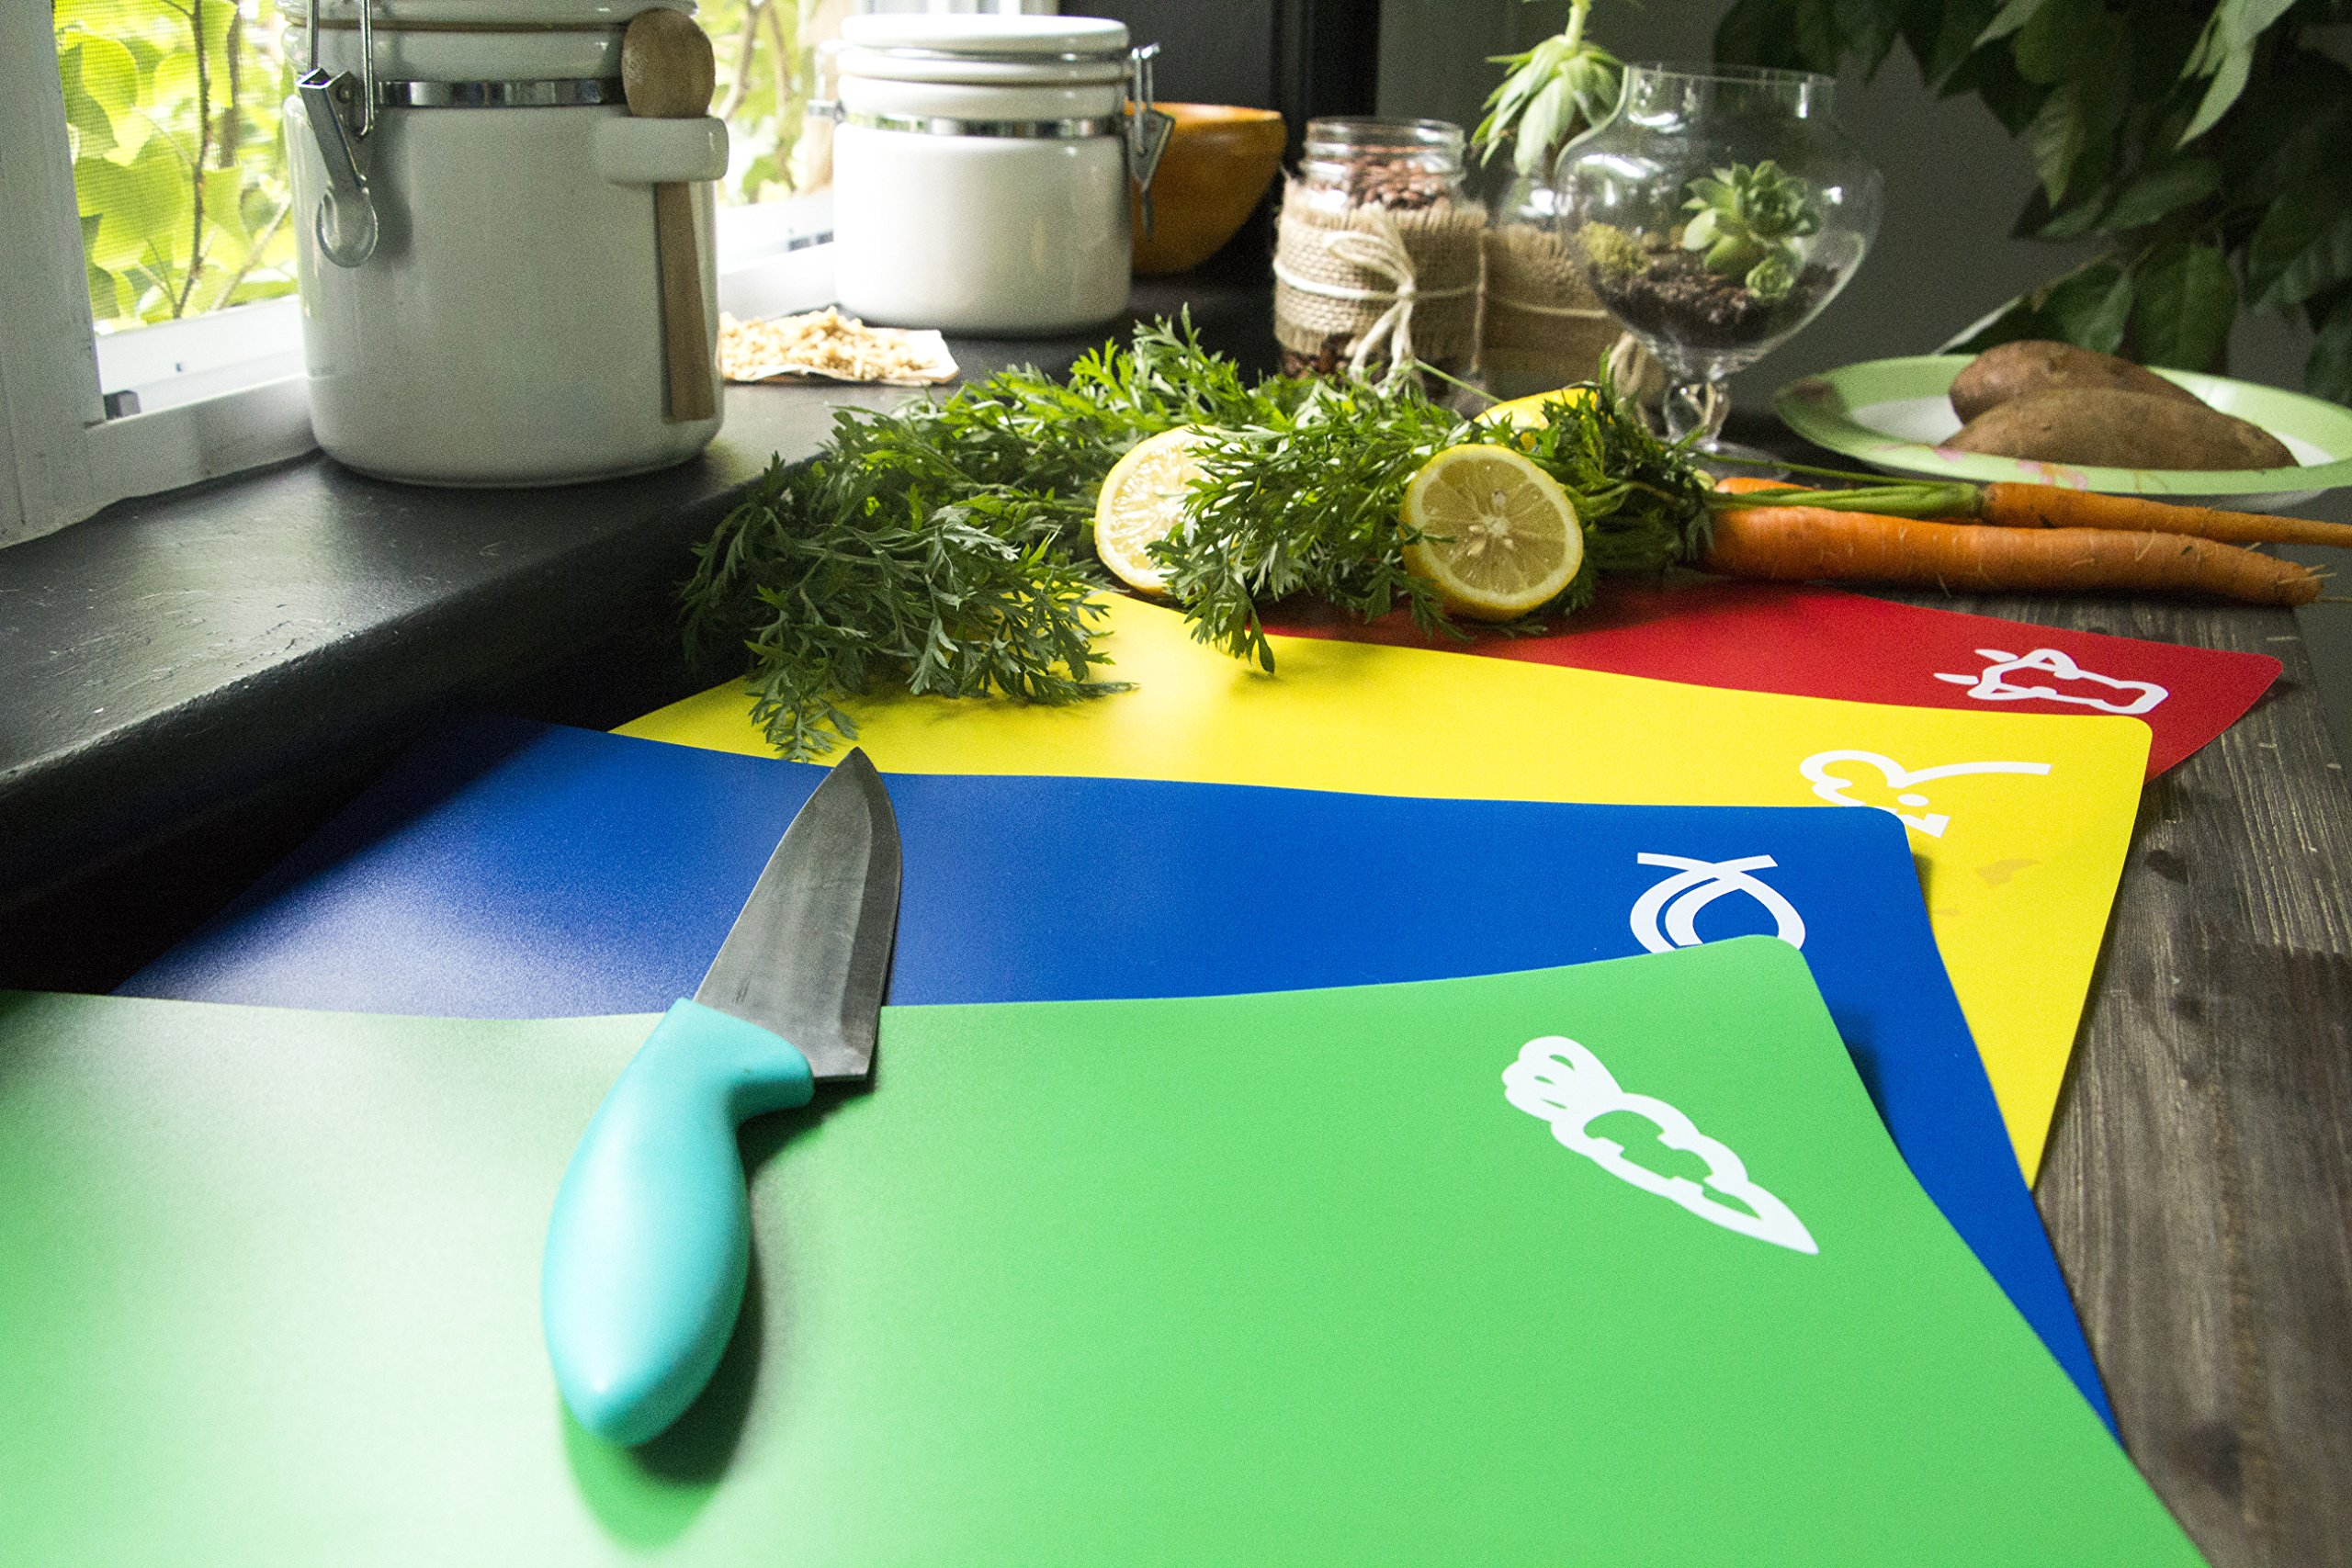 Bahoki Essentials 4 Piece Flexible Plastic Cutting Board, Placemat Set with Food Icons by BaHoki Essentials (Image #3)